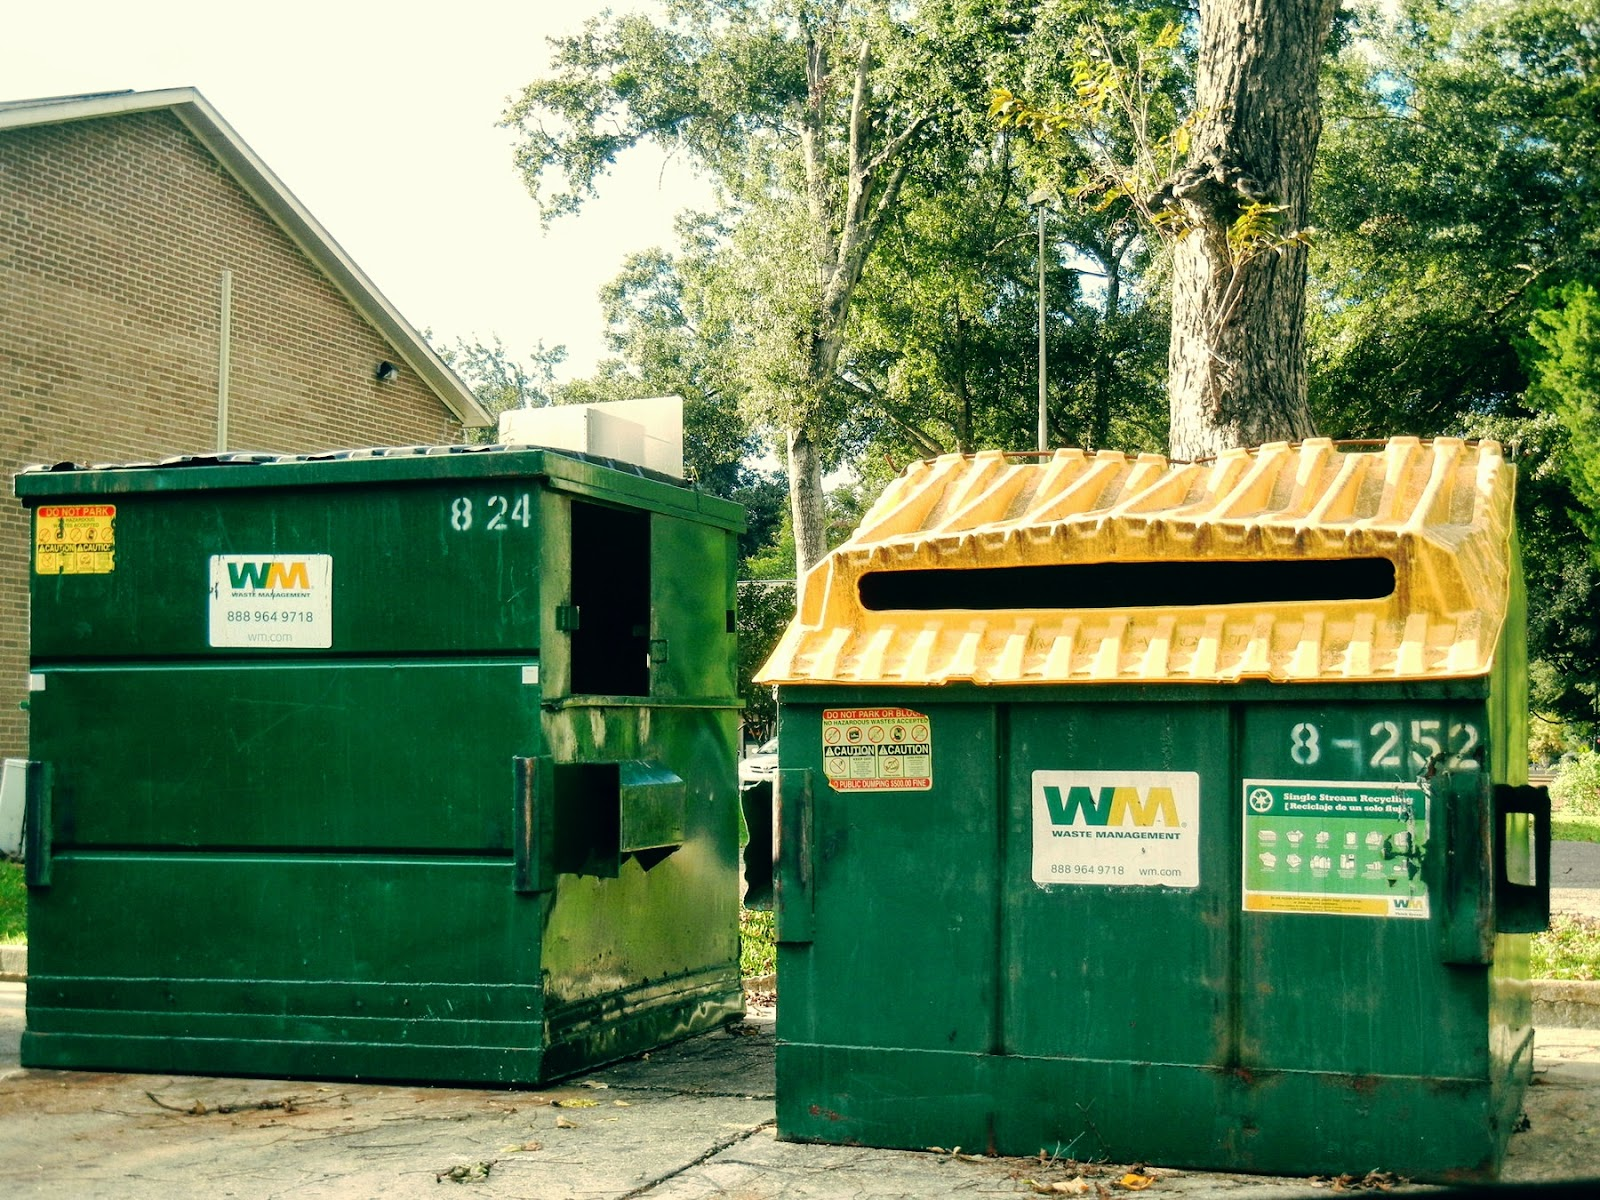 See How Easy It Is To Recycle At This Apartment Complex Trash On The Left Recyclables Right